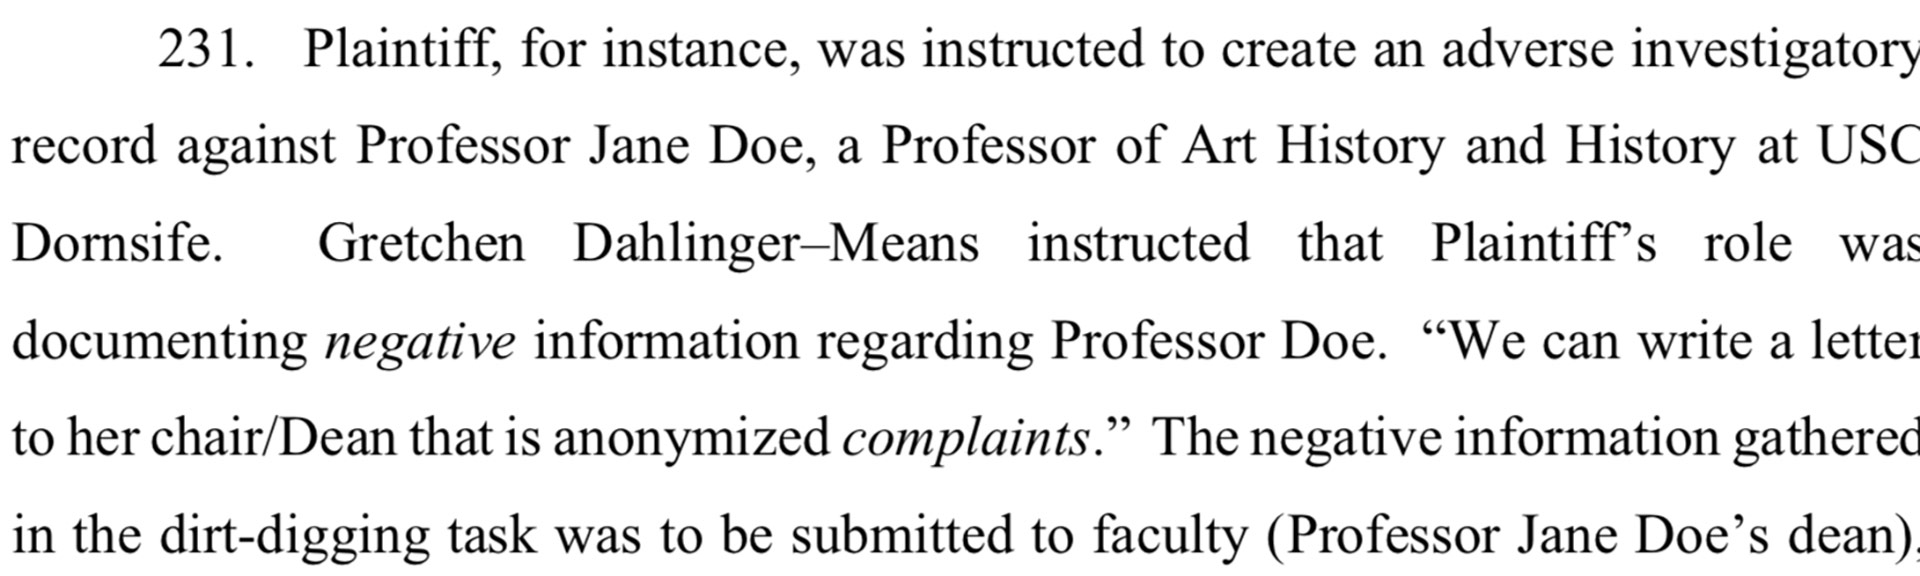 "The suit alleges 'dirt files"" were to be used against faculty, including a particular art history professor for ""vocalizing unpopular opinions."""